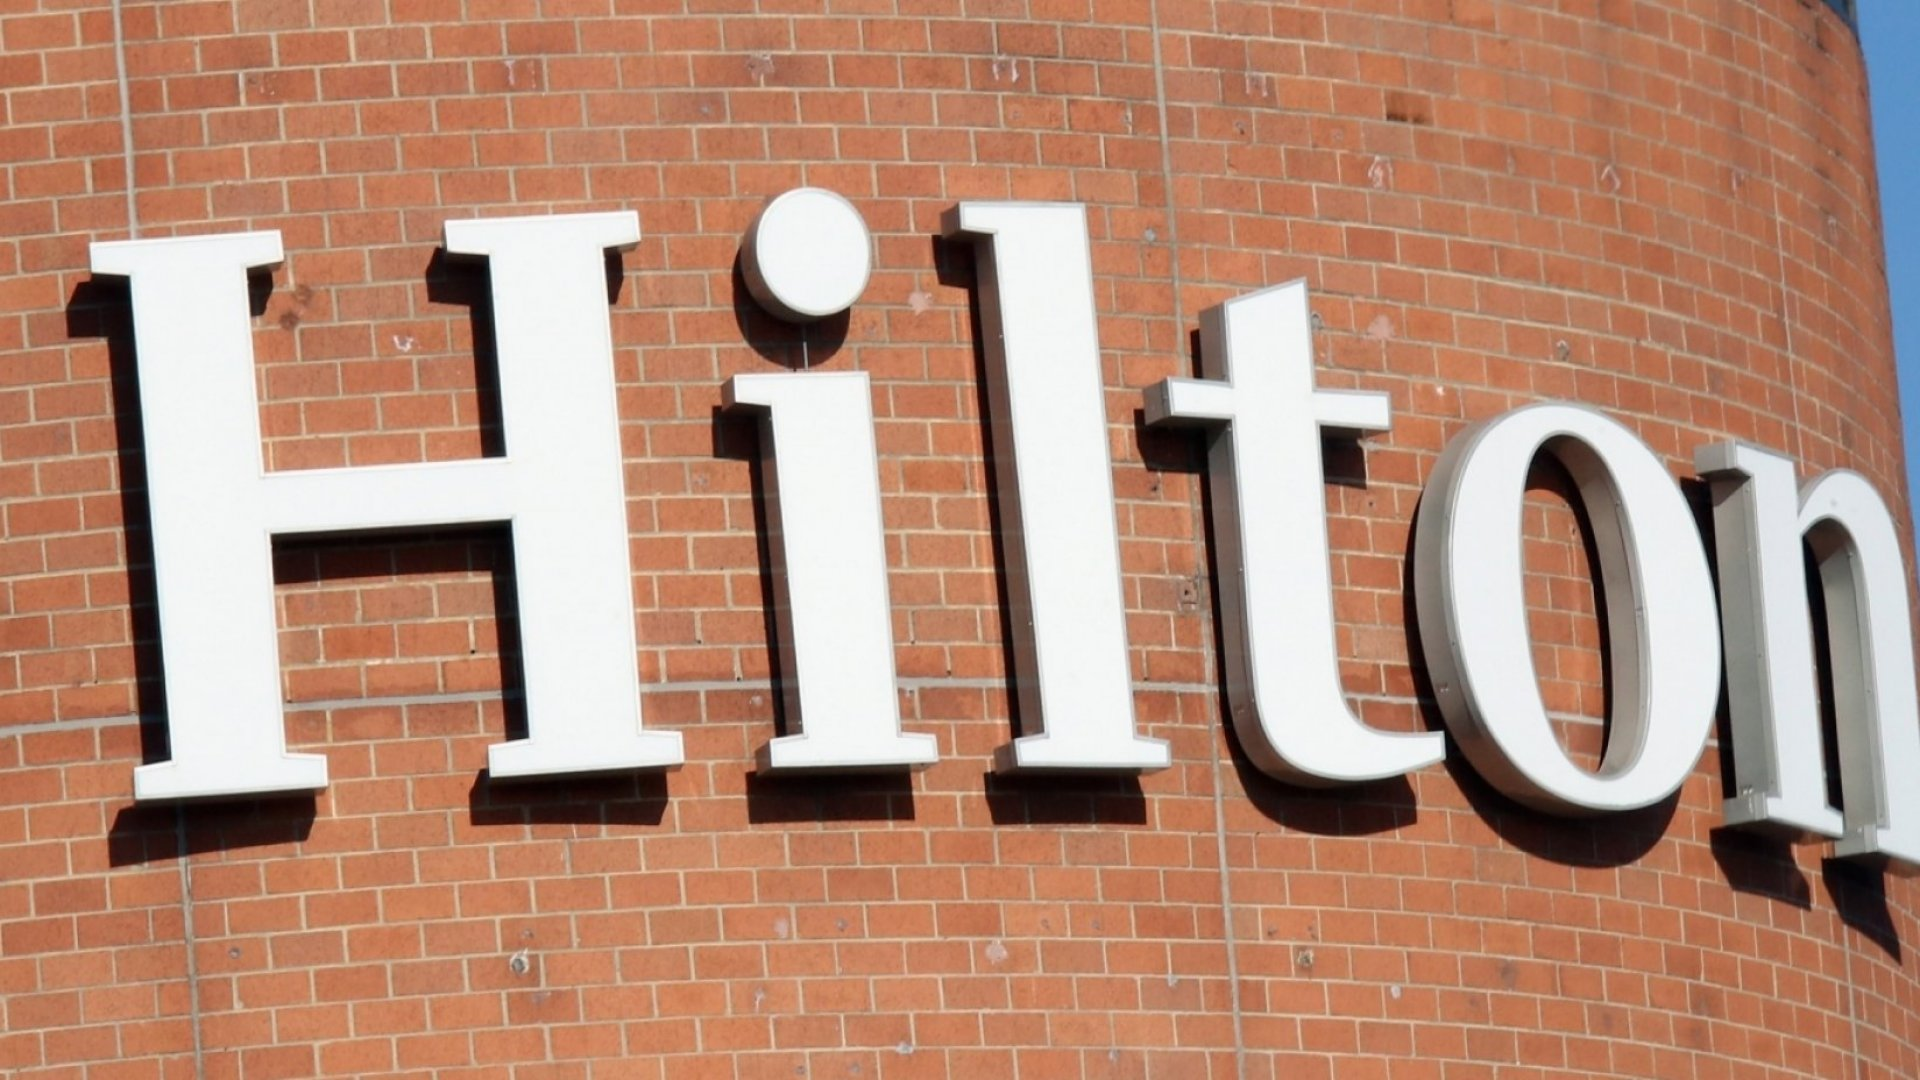 Hilton Revealed the Sad Way We'll Choose Hotels in the Future